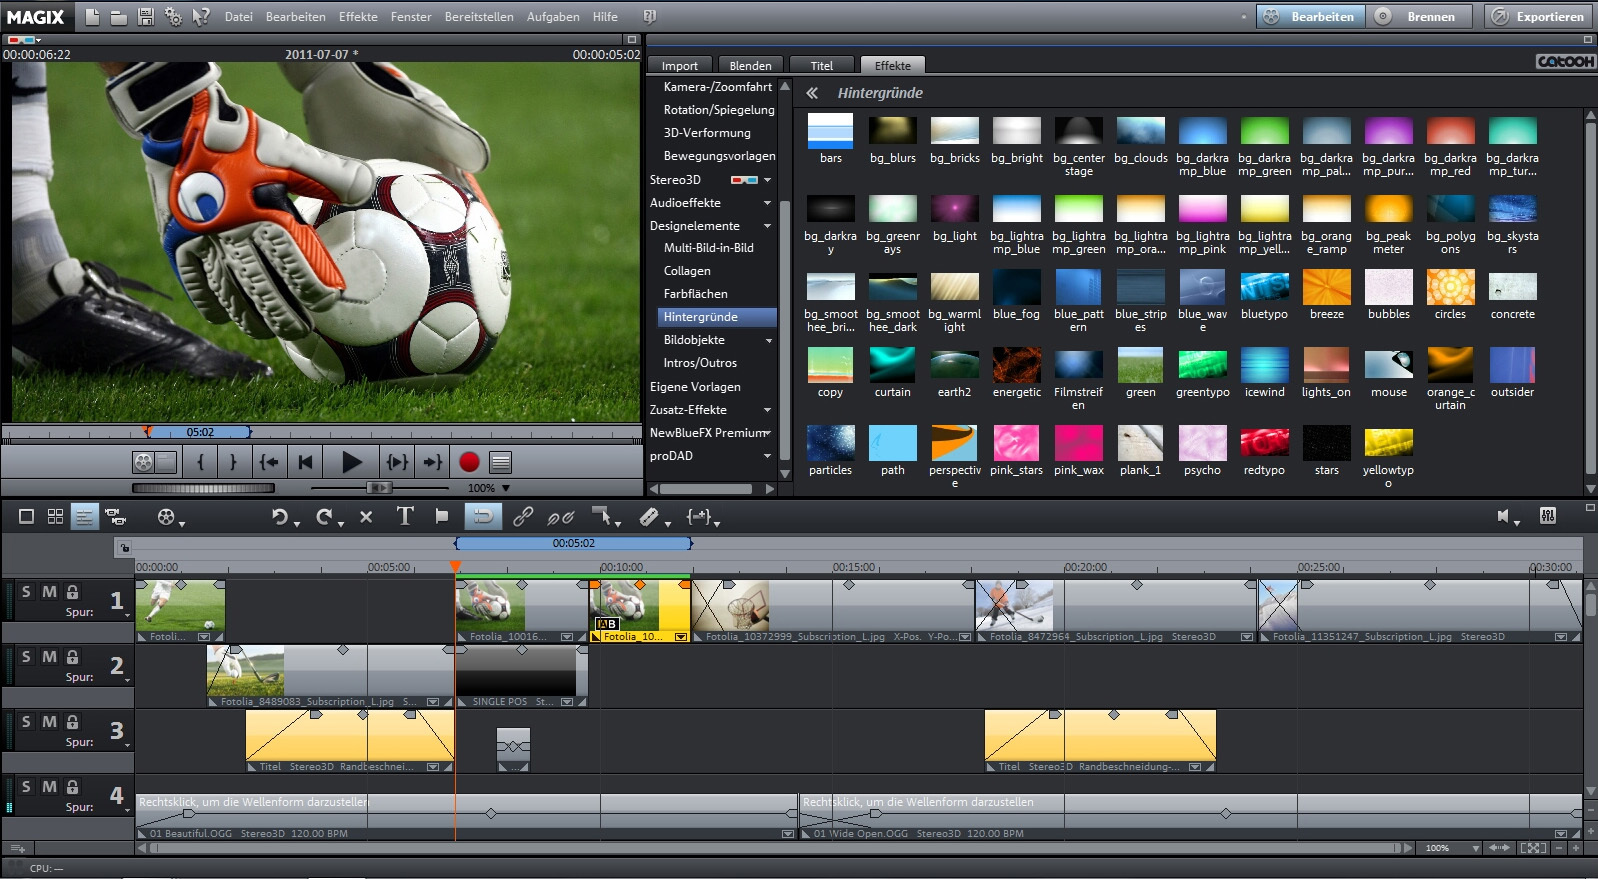 Сэмплы для magix music maker - 73f18